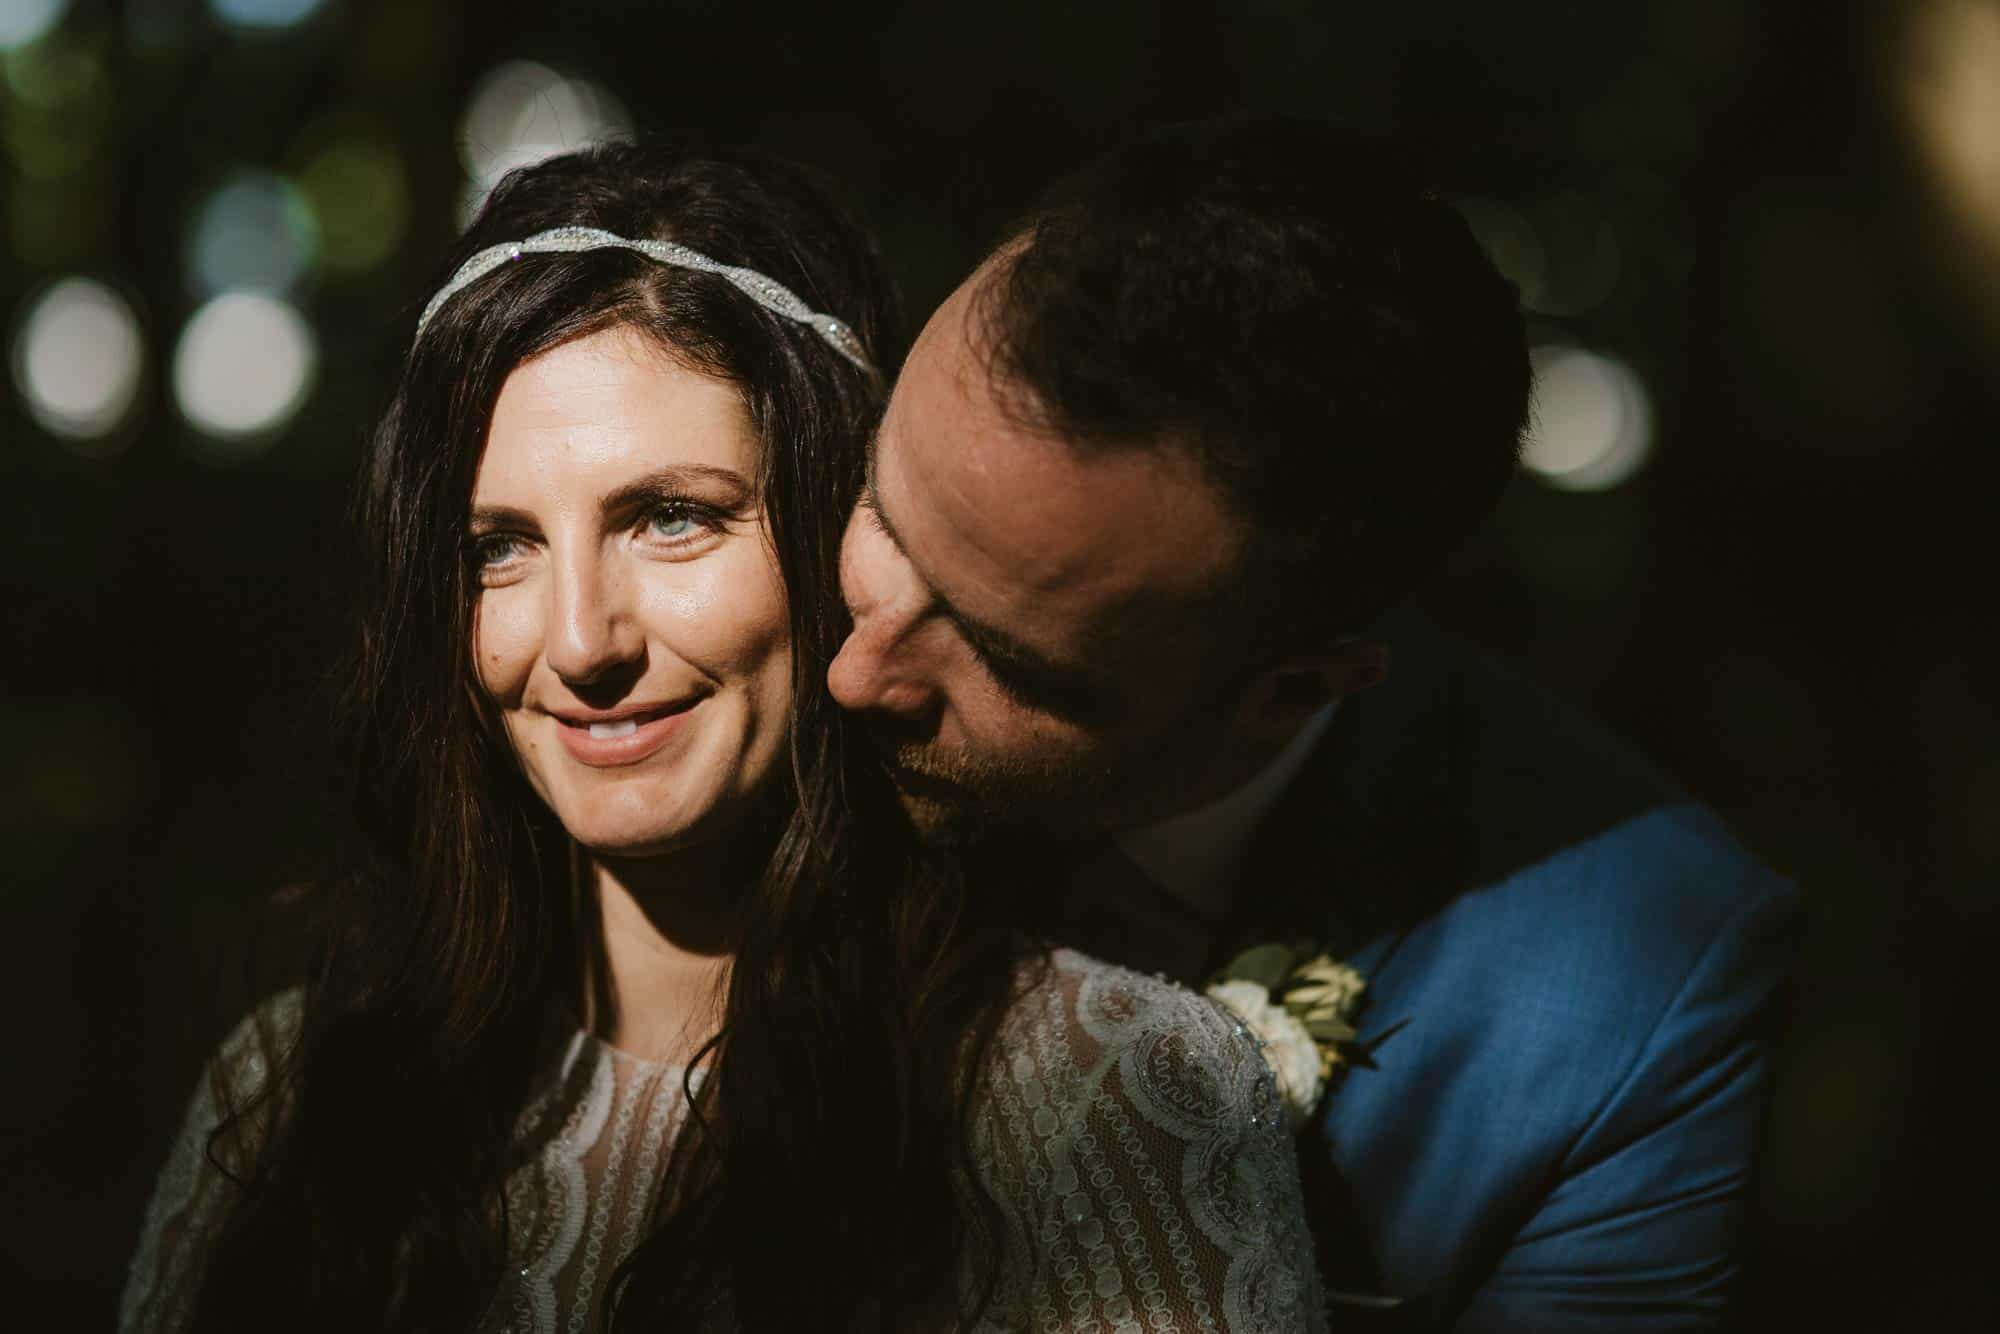 Elopement videographer Ireland, smiling bride in dark light